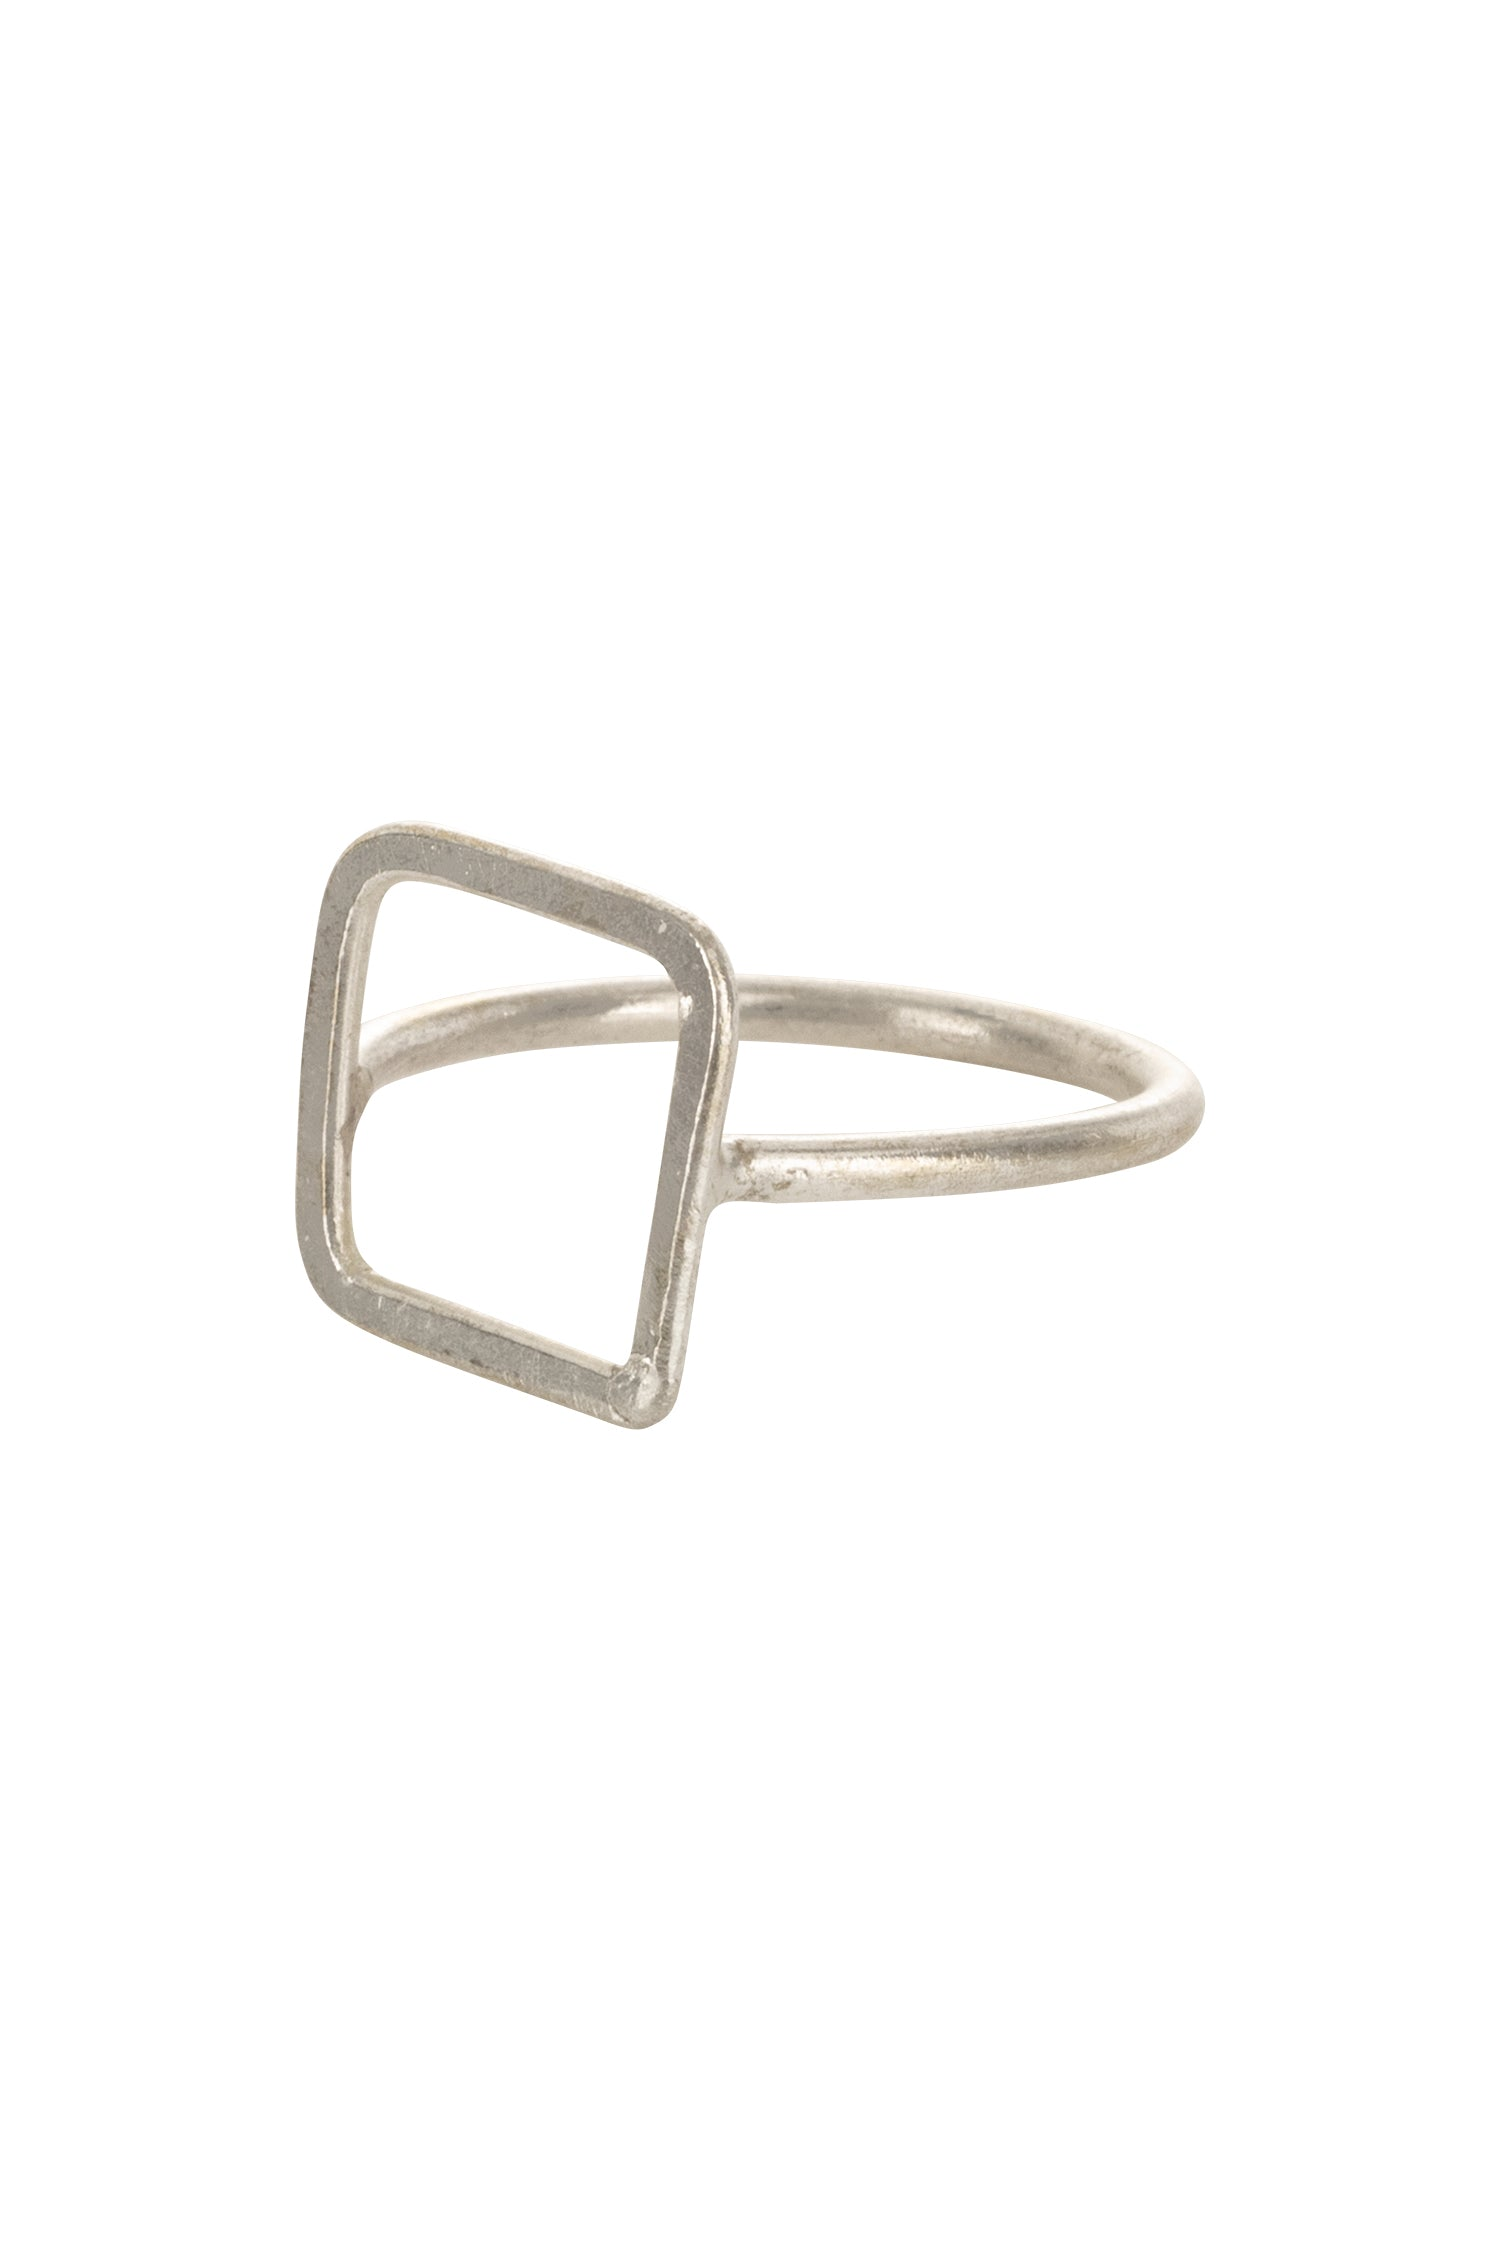 Square ring - Silver-Ring-Sancho's Dress